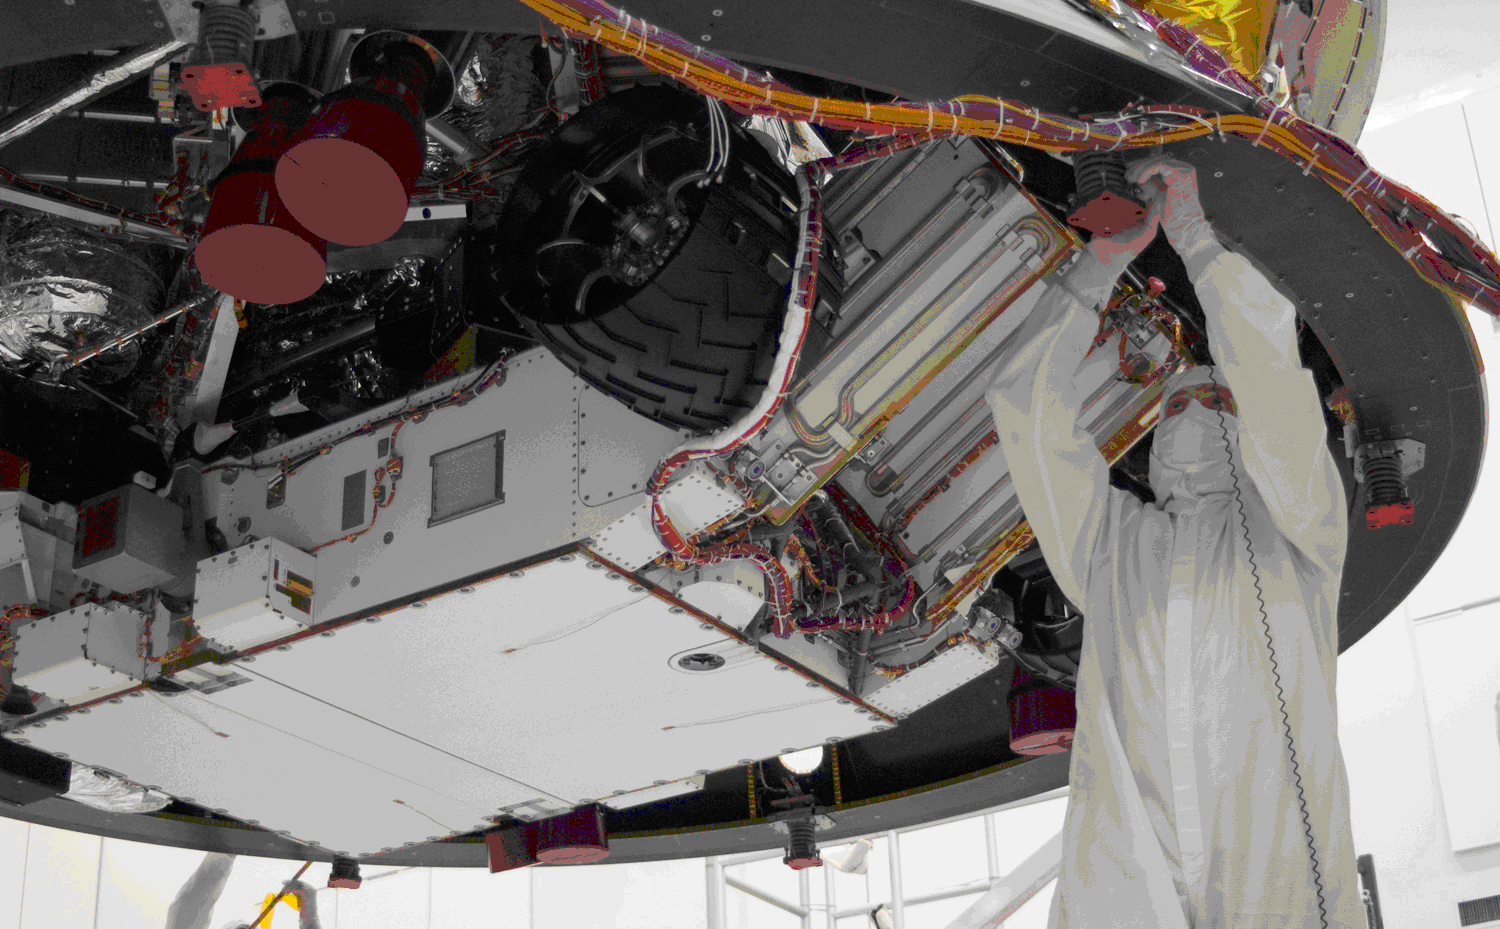 This image shows an engineer dressed in cleanroom coverall working on the rover which is overhead.